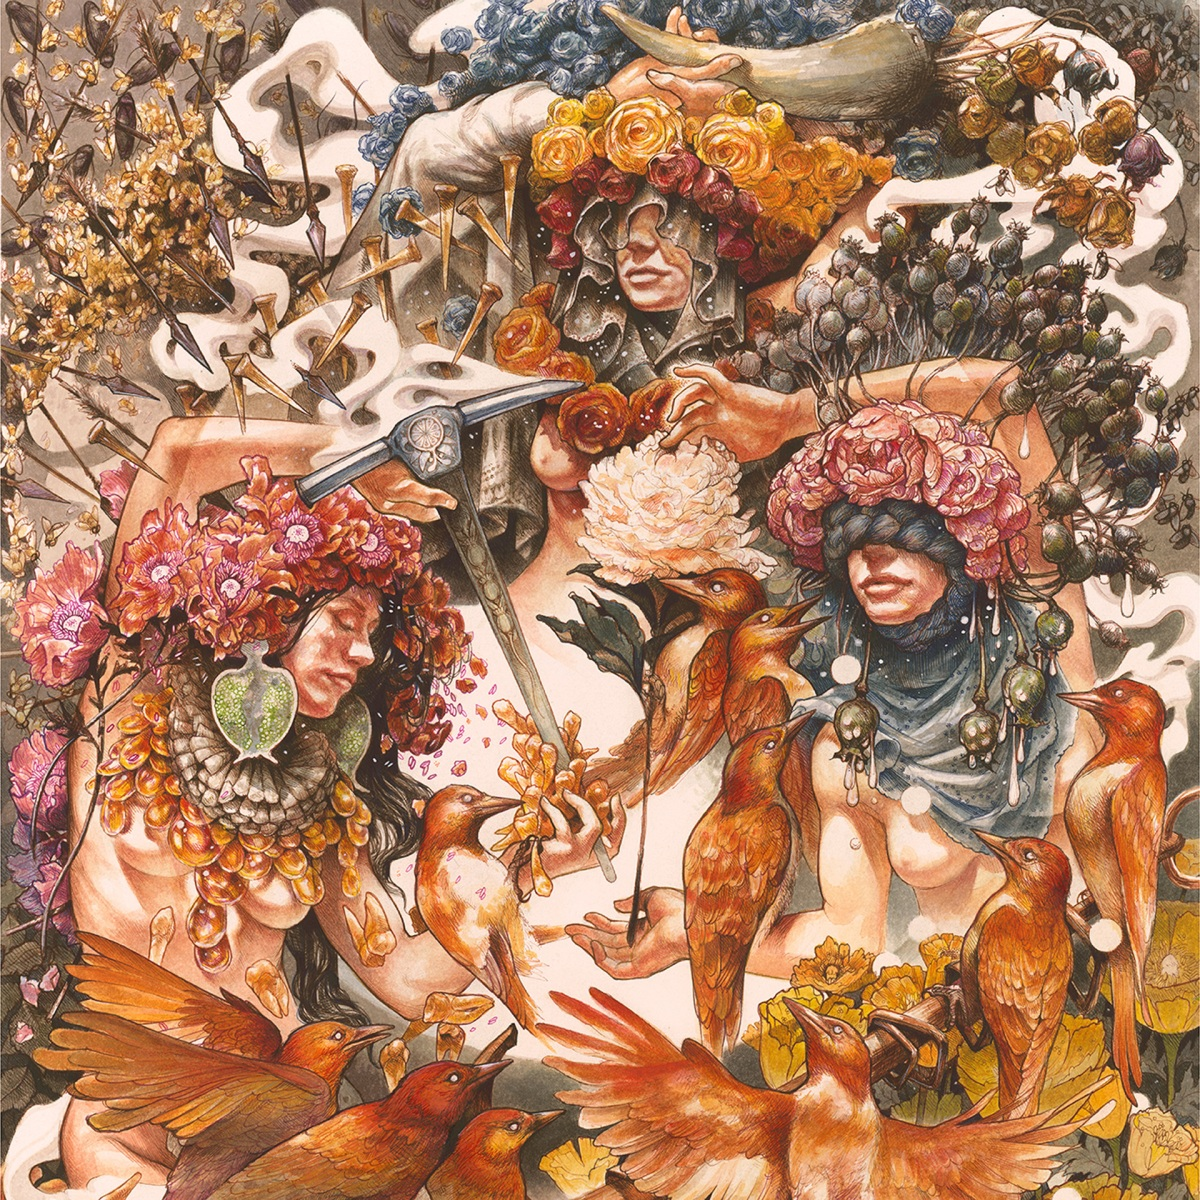 Baroness Release Gold and Grey on June 14 via AbraxanHymns